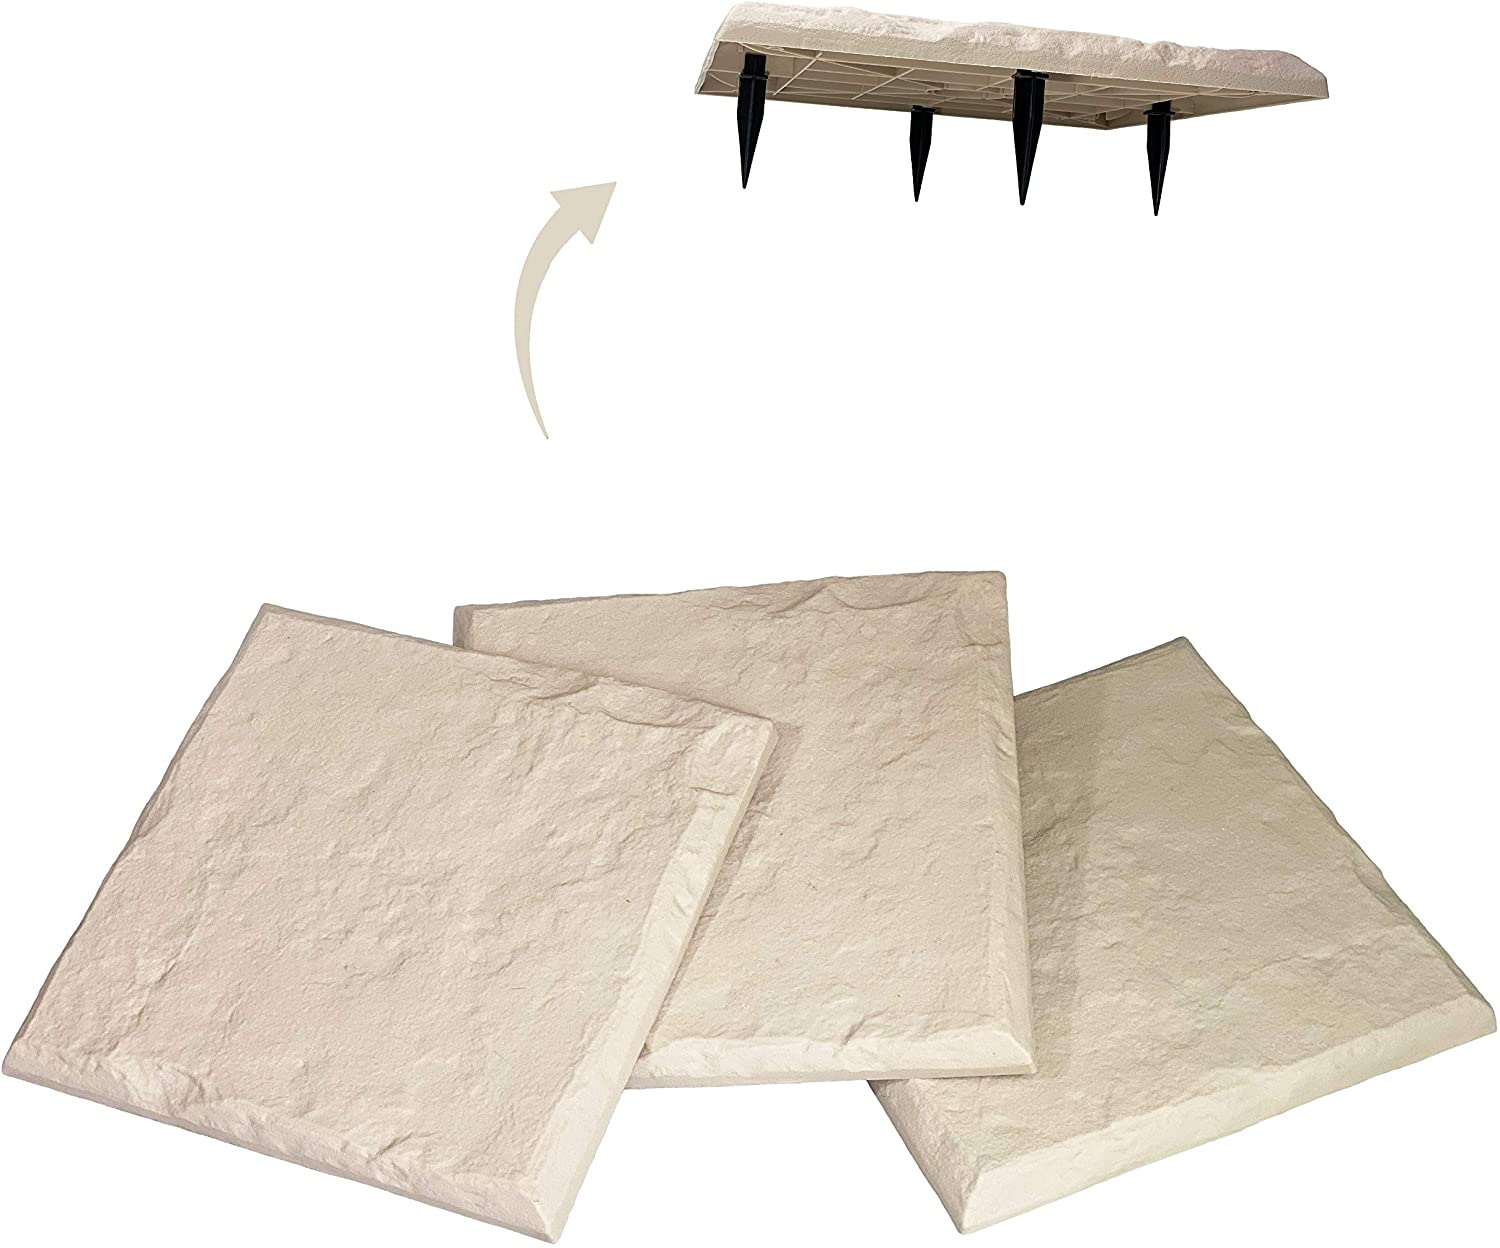 """Gardien New Innovative 15.5"""" All Weather Decorative Stepping Stones That Steak Into The Ground! Home or Garden Pavers - Beige Limestone Look"""